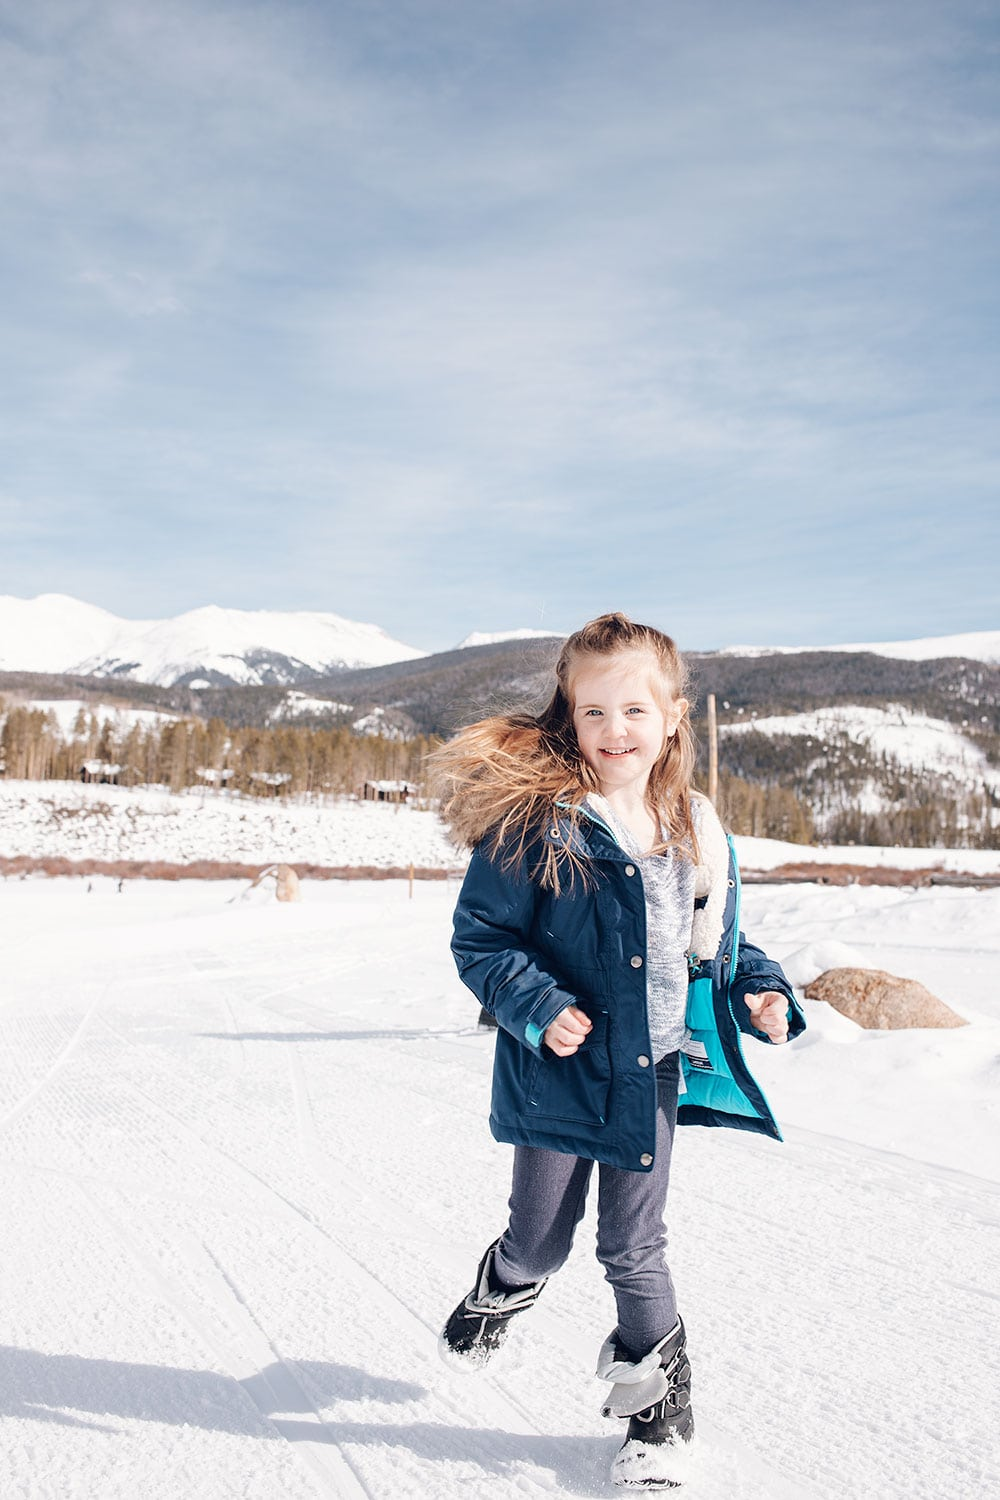 Houston blogger Meg O. on the Go shares her family ski trip to Winter Park Colorado